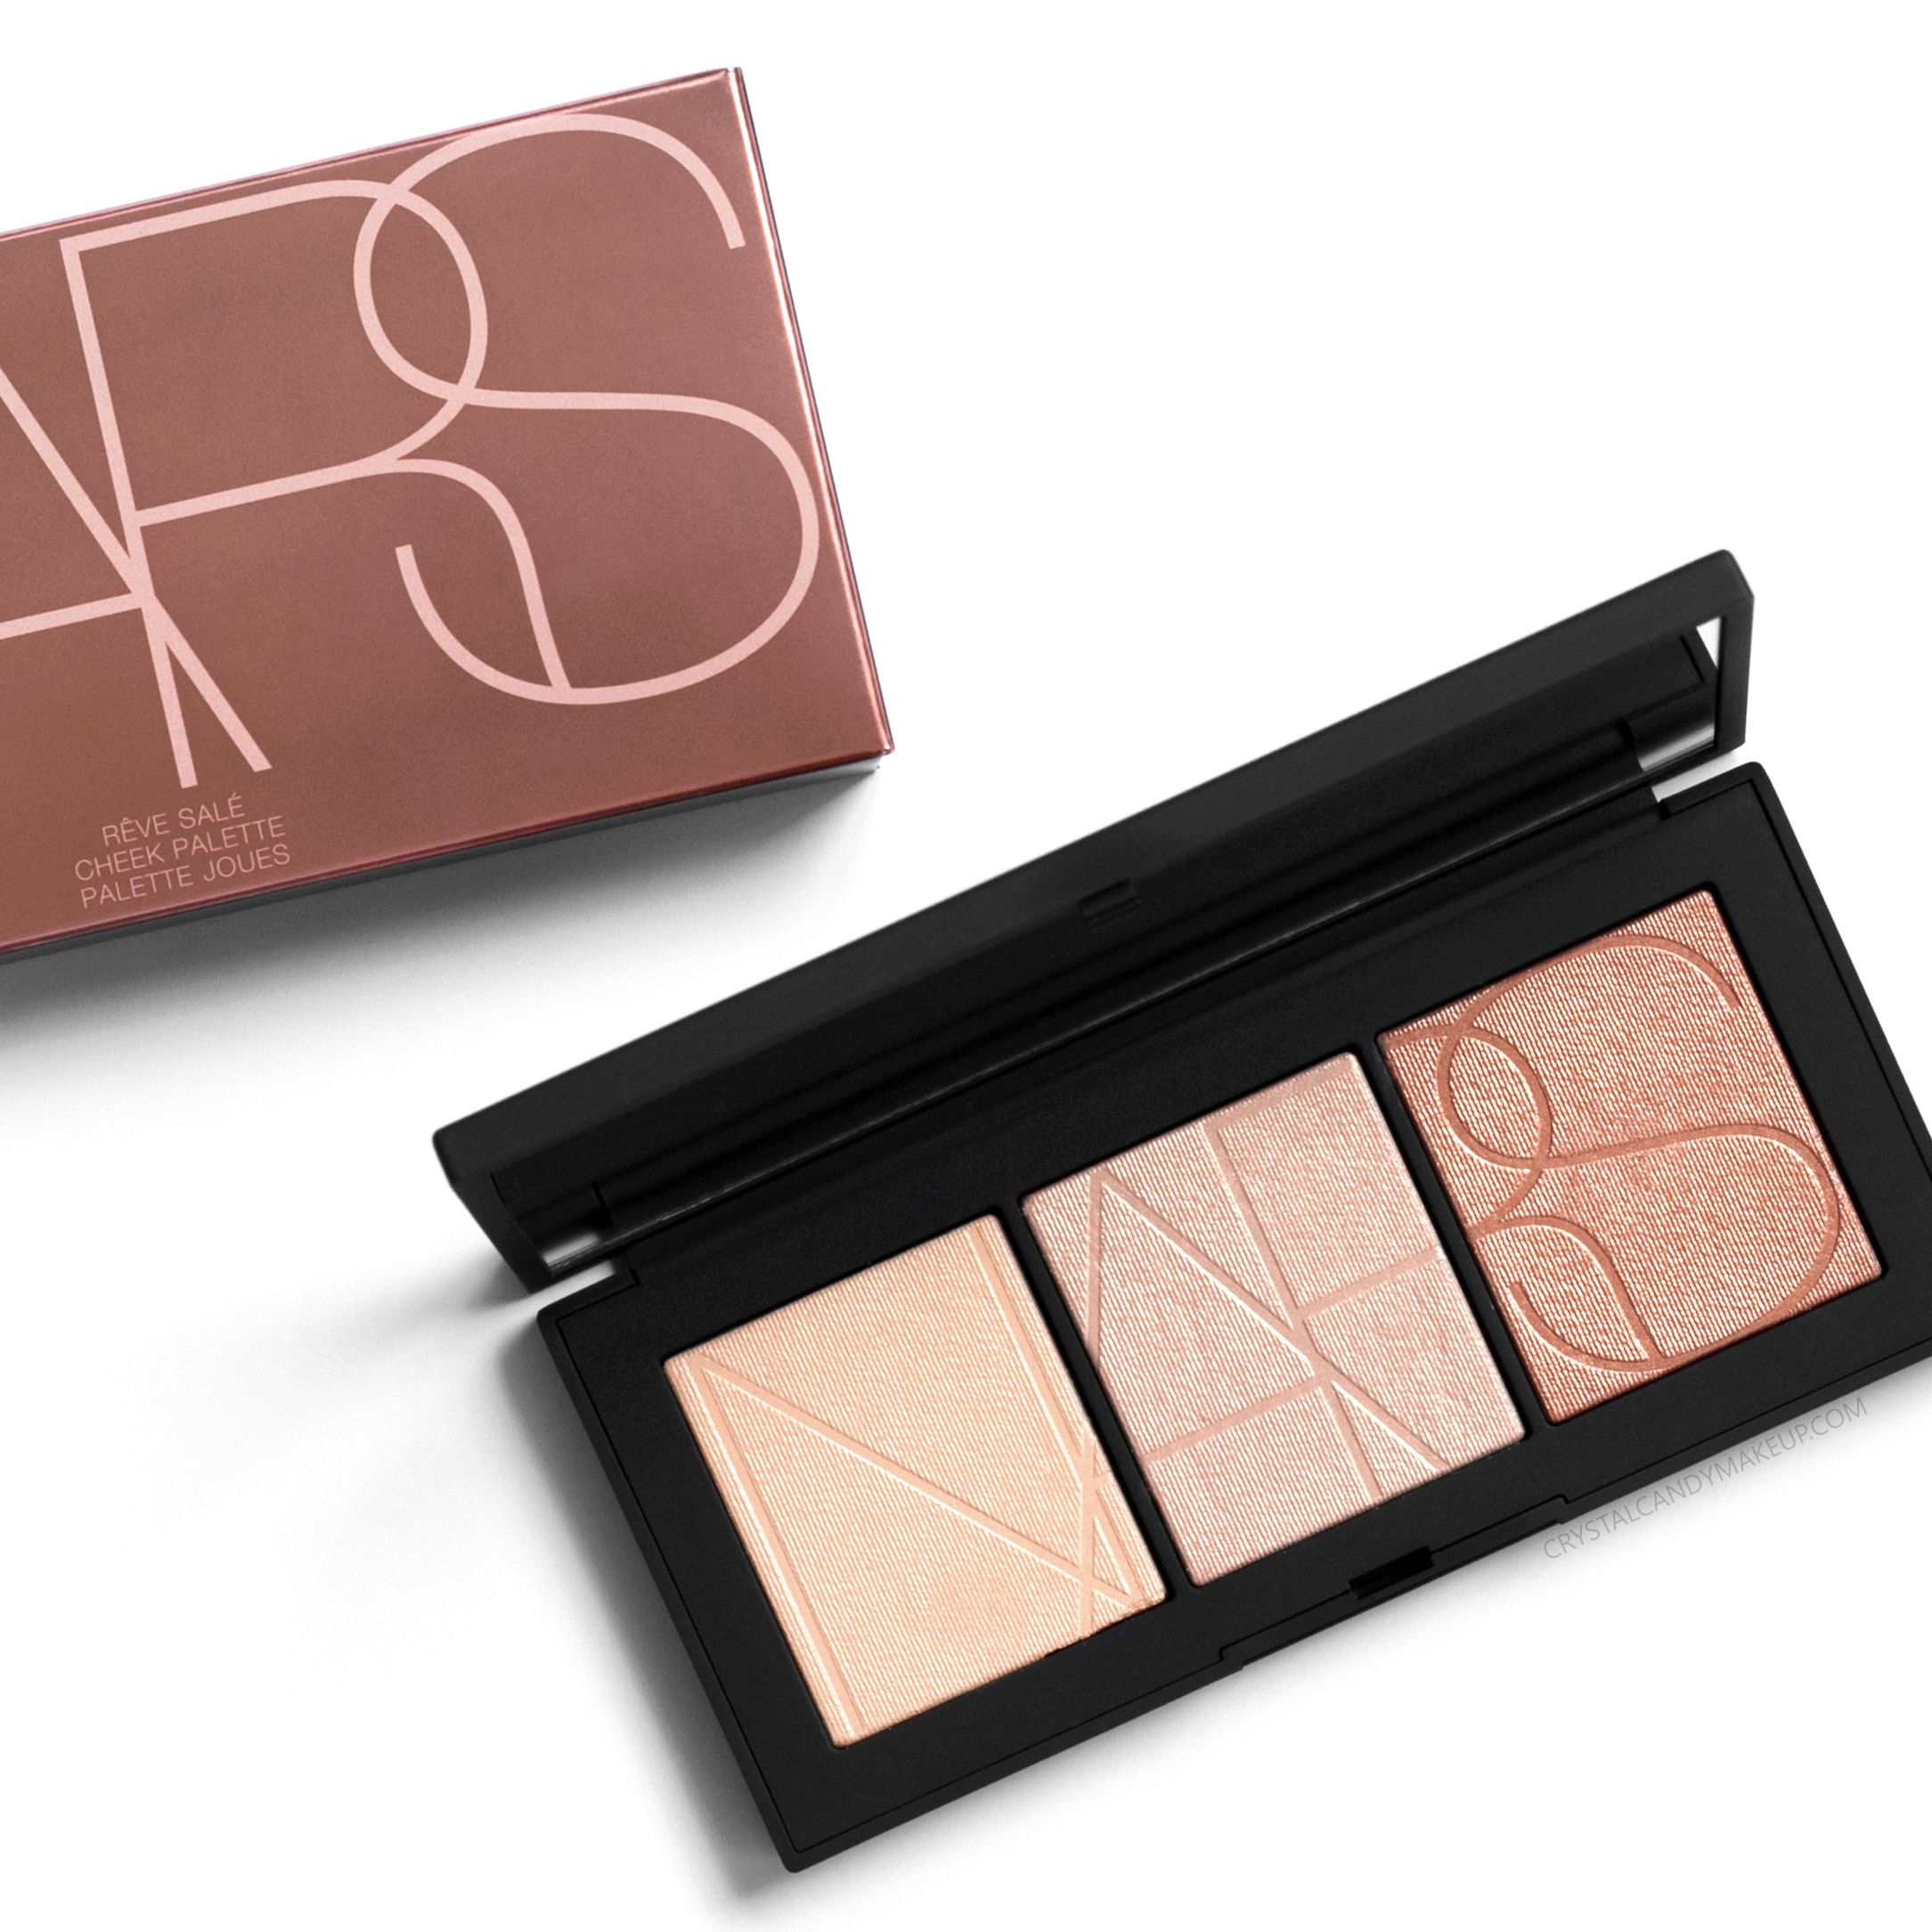 NARS Rêve Salé Cheek Palette Review and Swatches